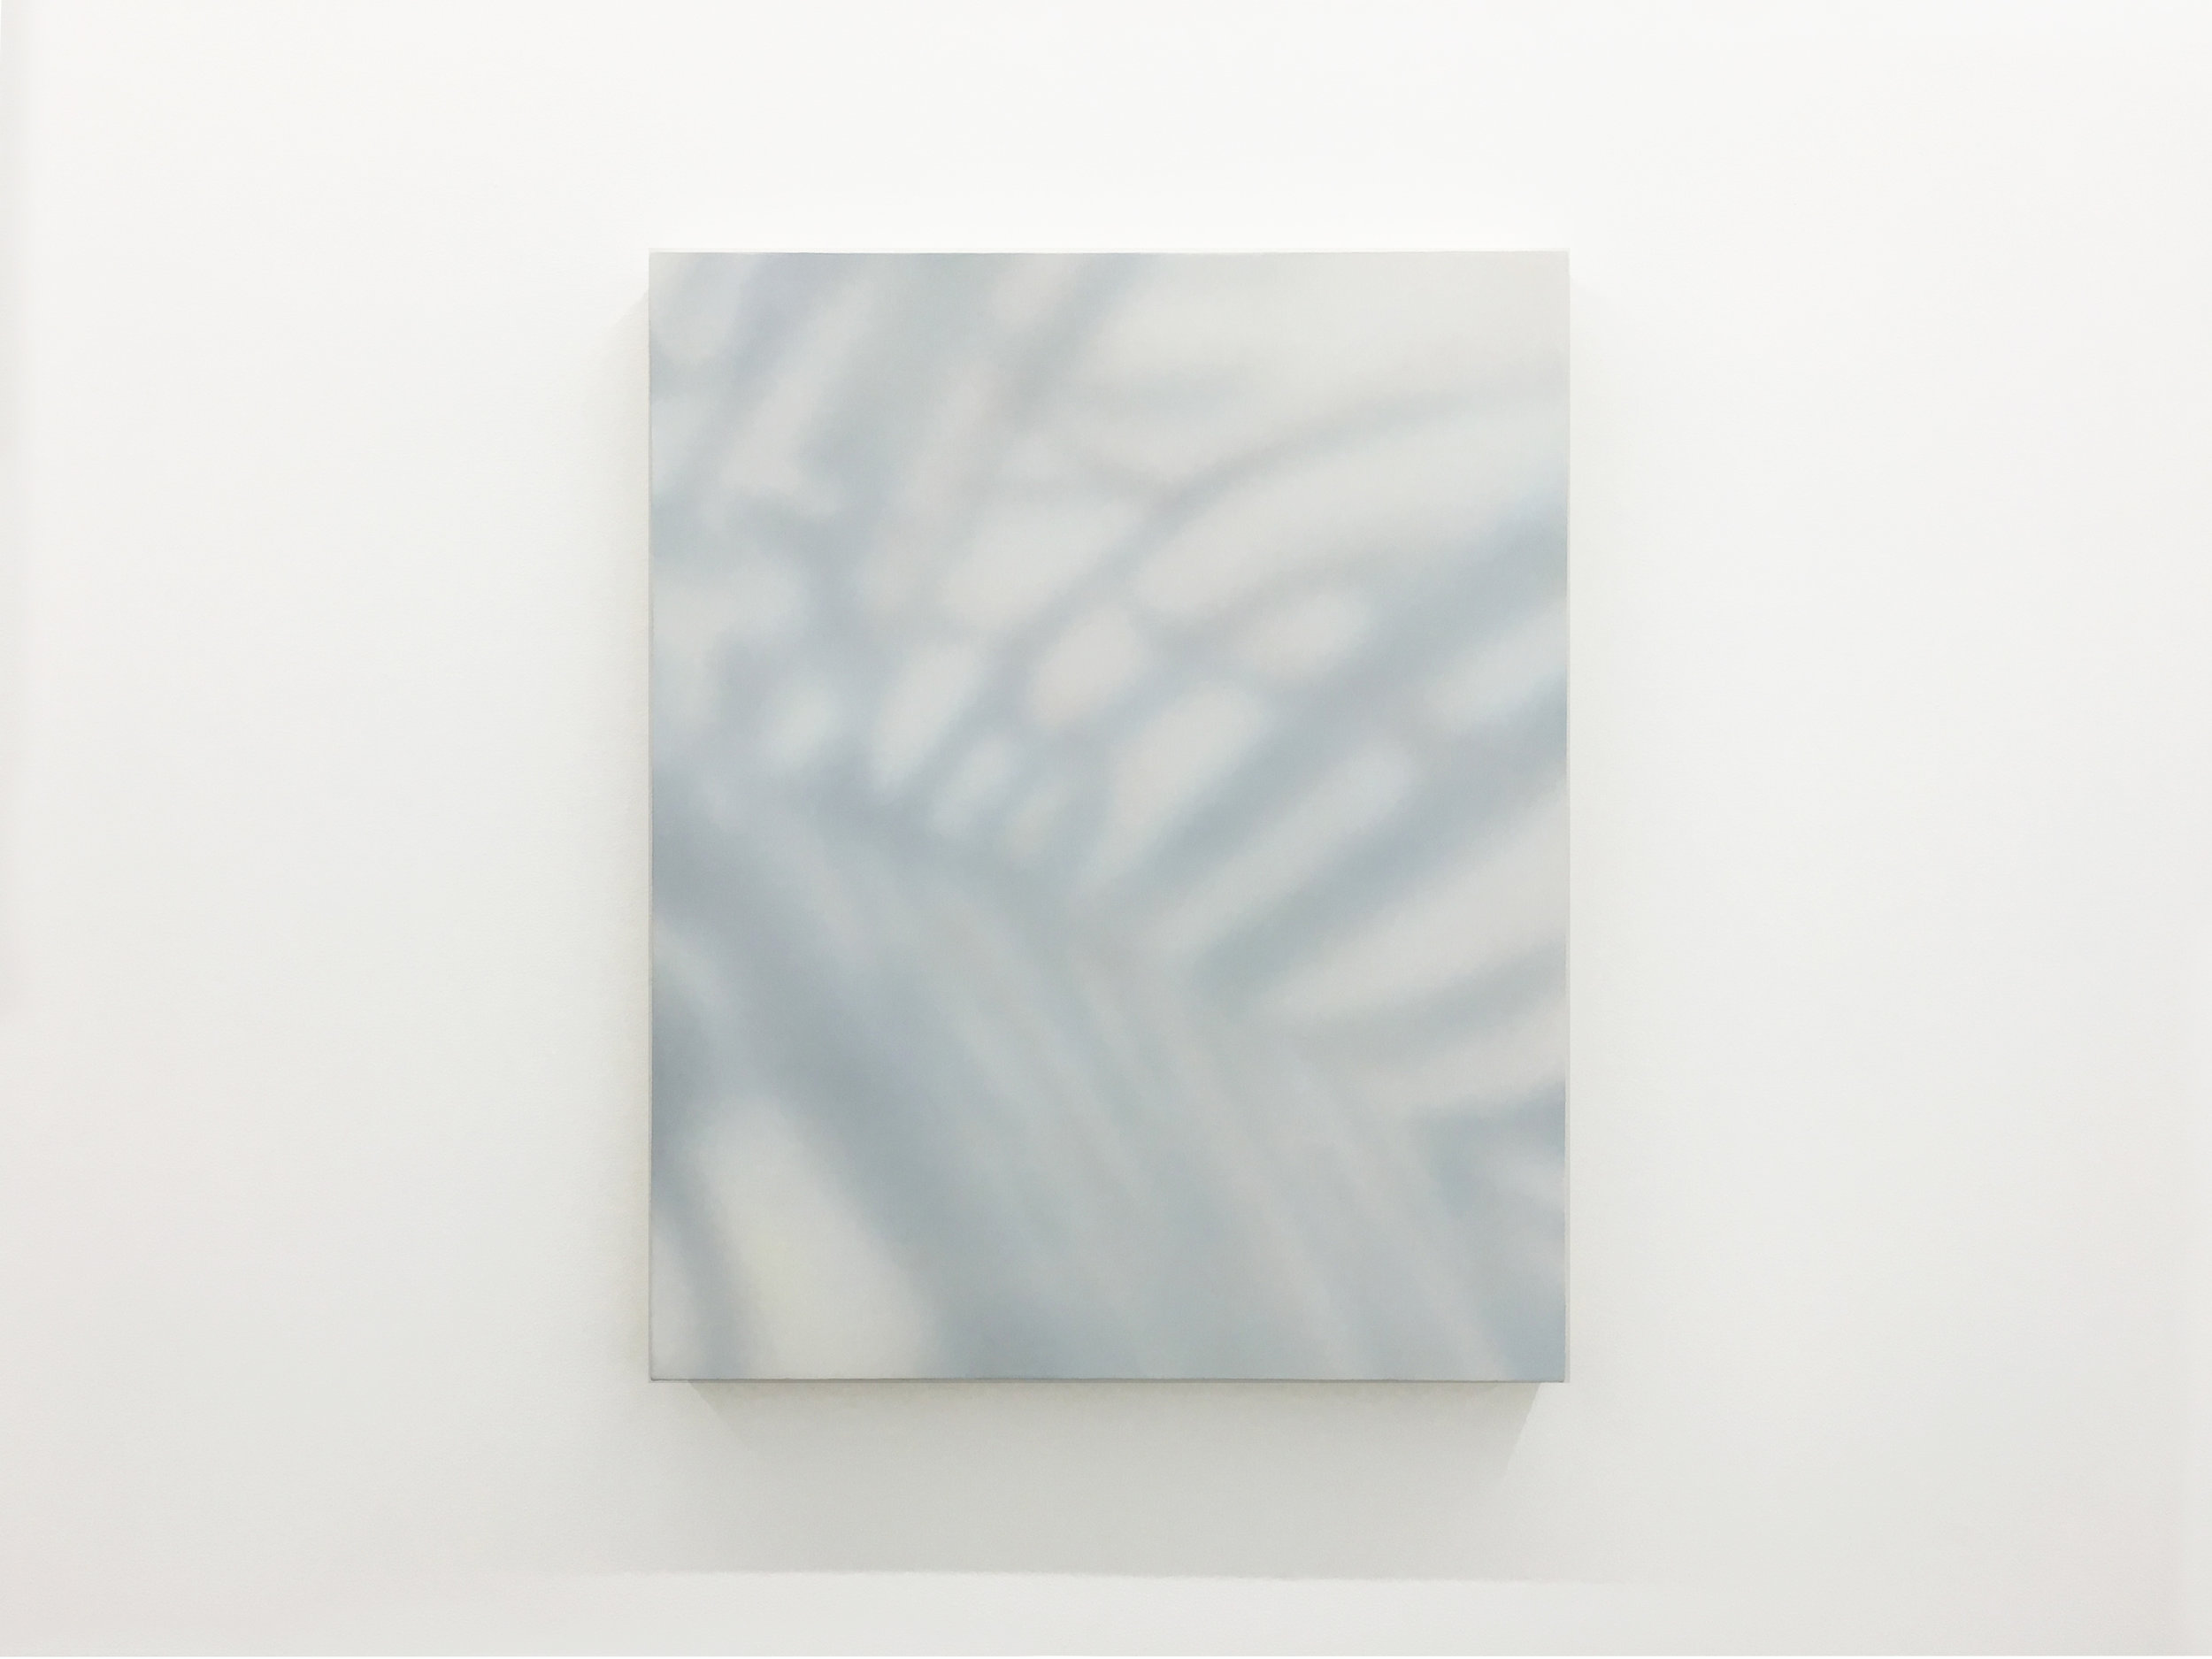 James Case Leal's painting depicts an abstracted shadow of plant matter resembling palm leaves